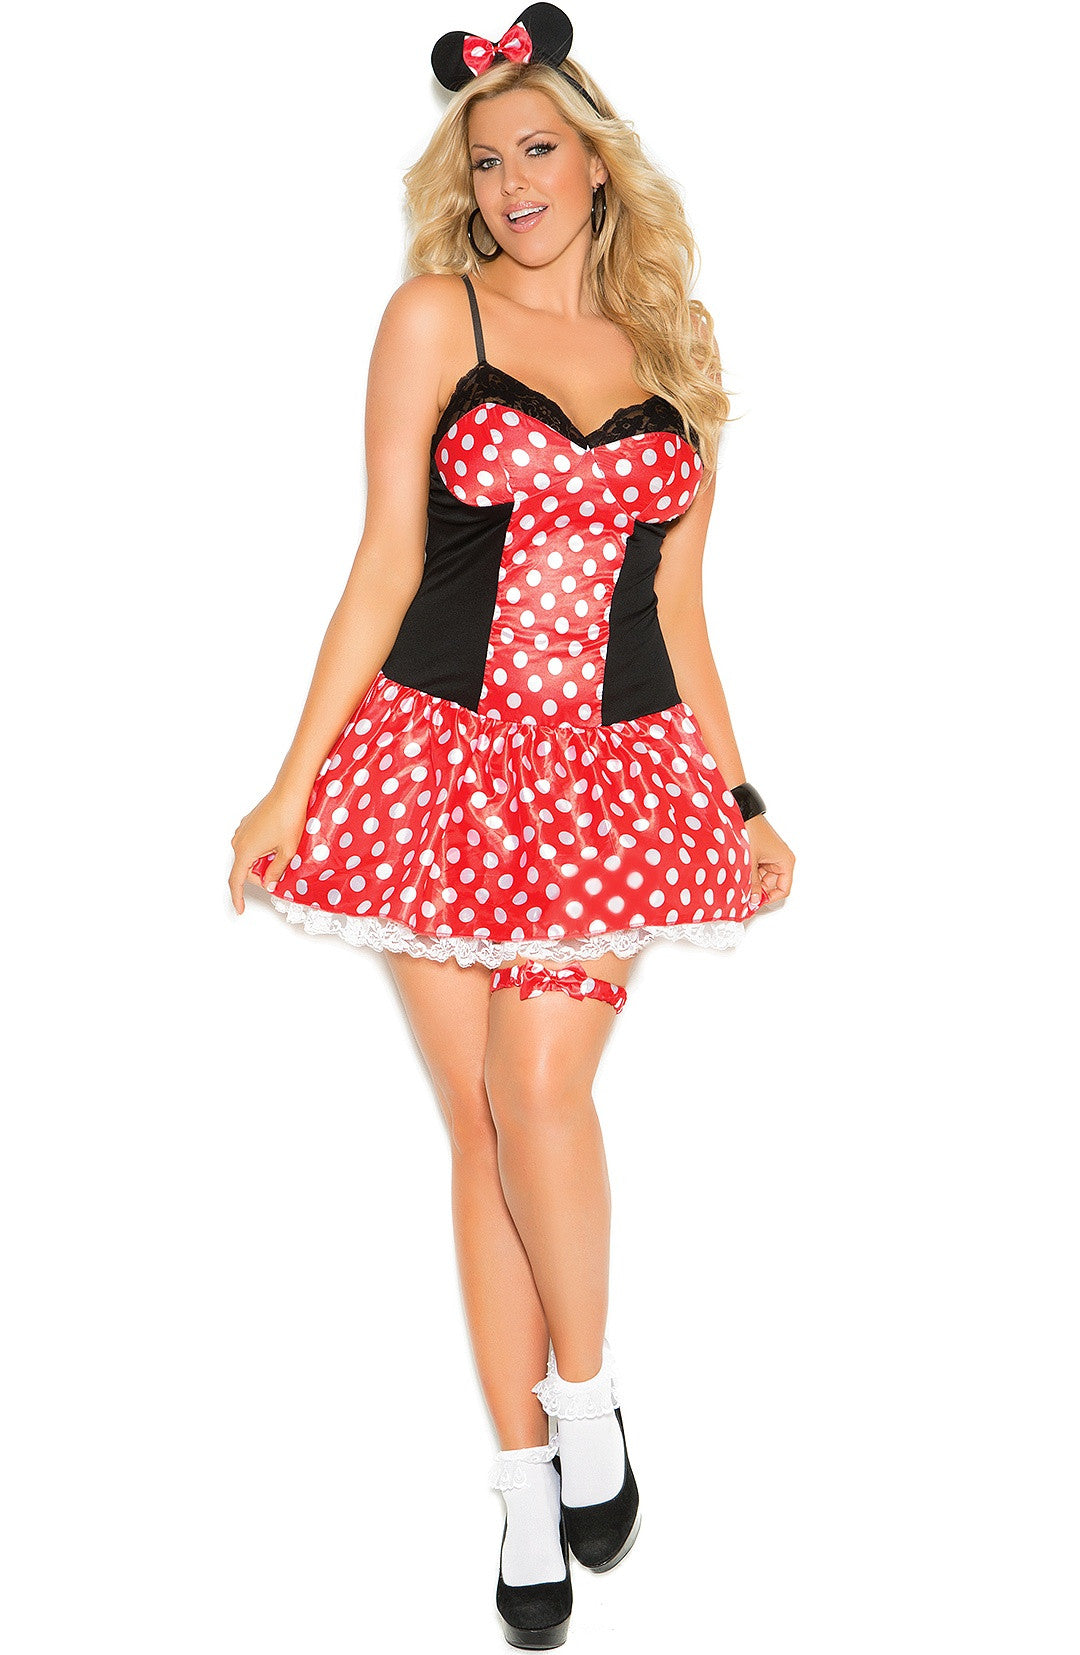 EM-9130 Miss Mouse costume - Sexylingerieland